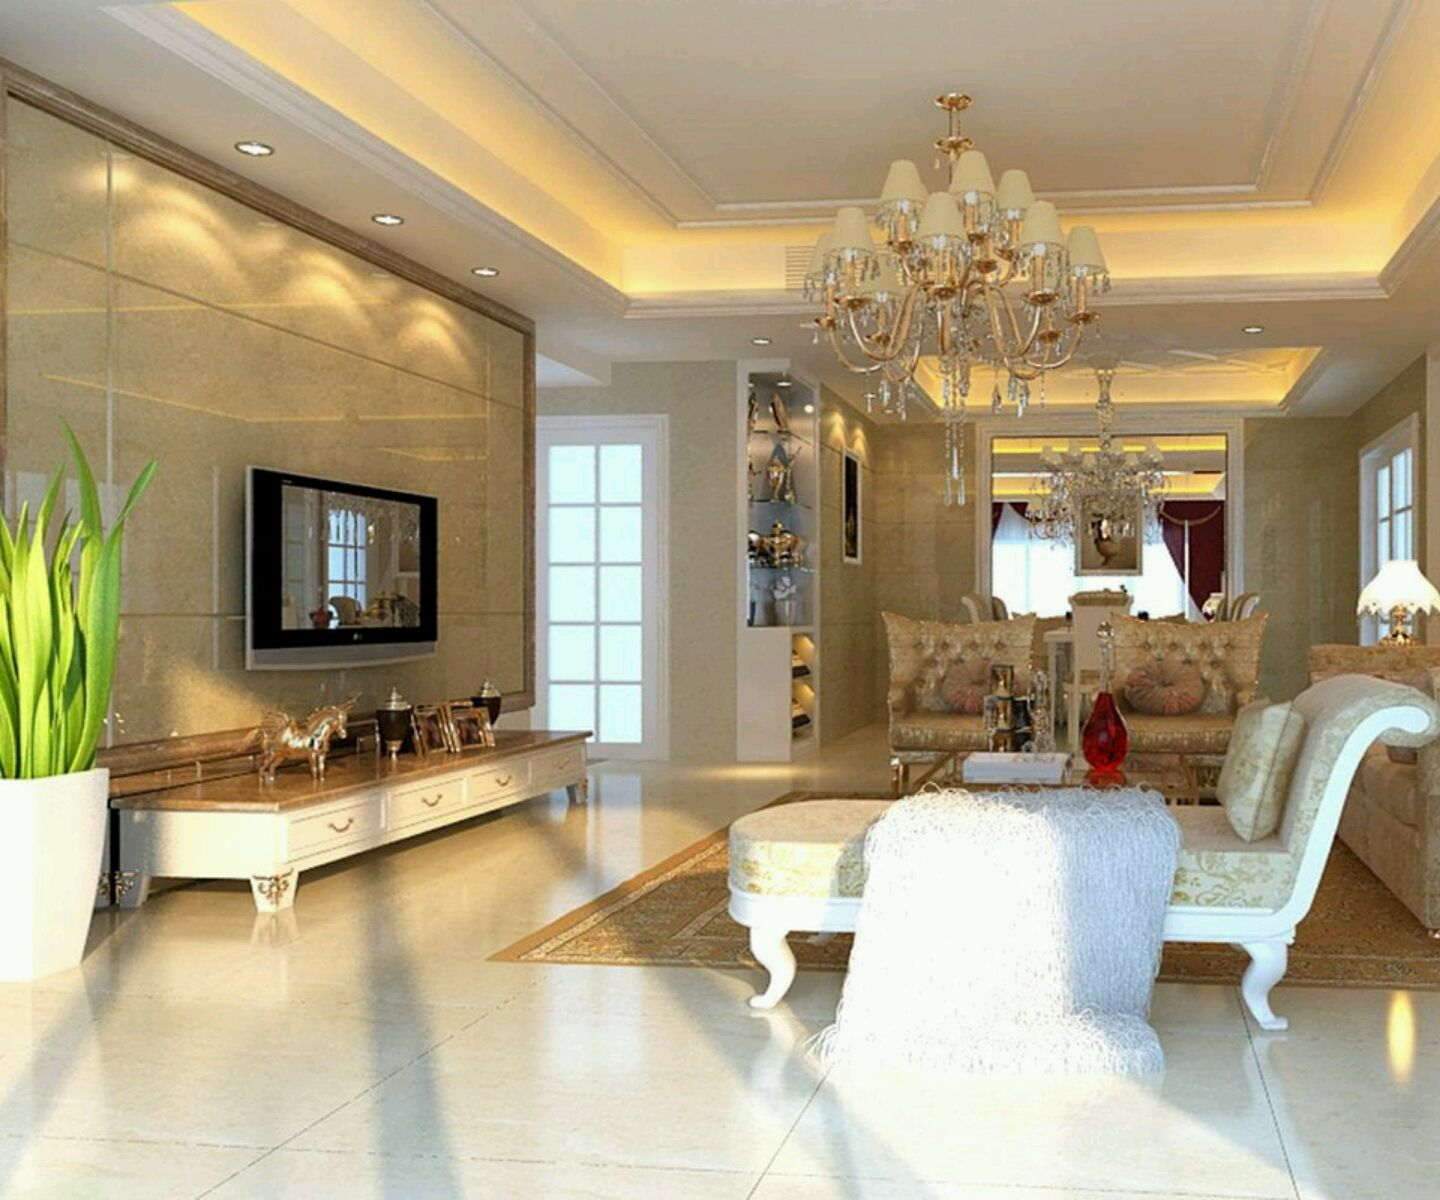 Luxury Home Interior Designs Plans Stunning Luxury Home Interior Designers22 Stunning Interior Design Ideas . Decorating Design